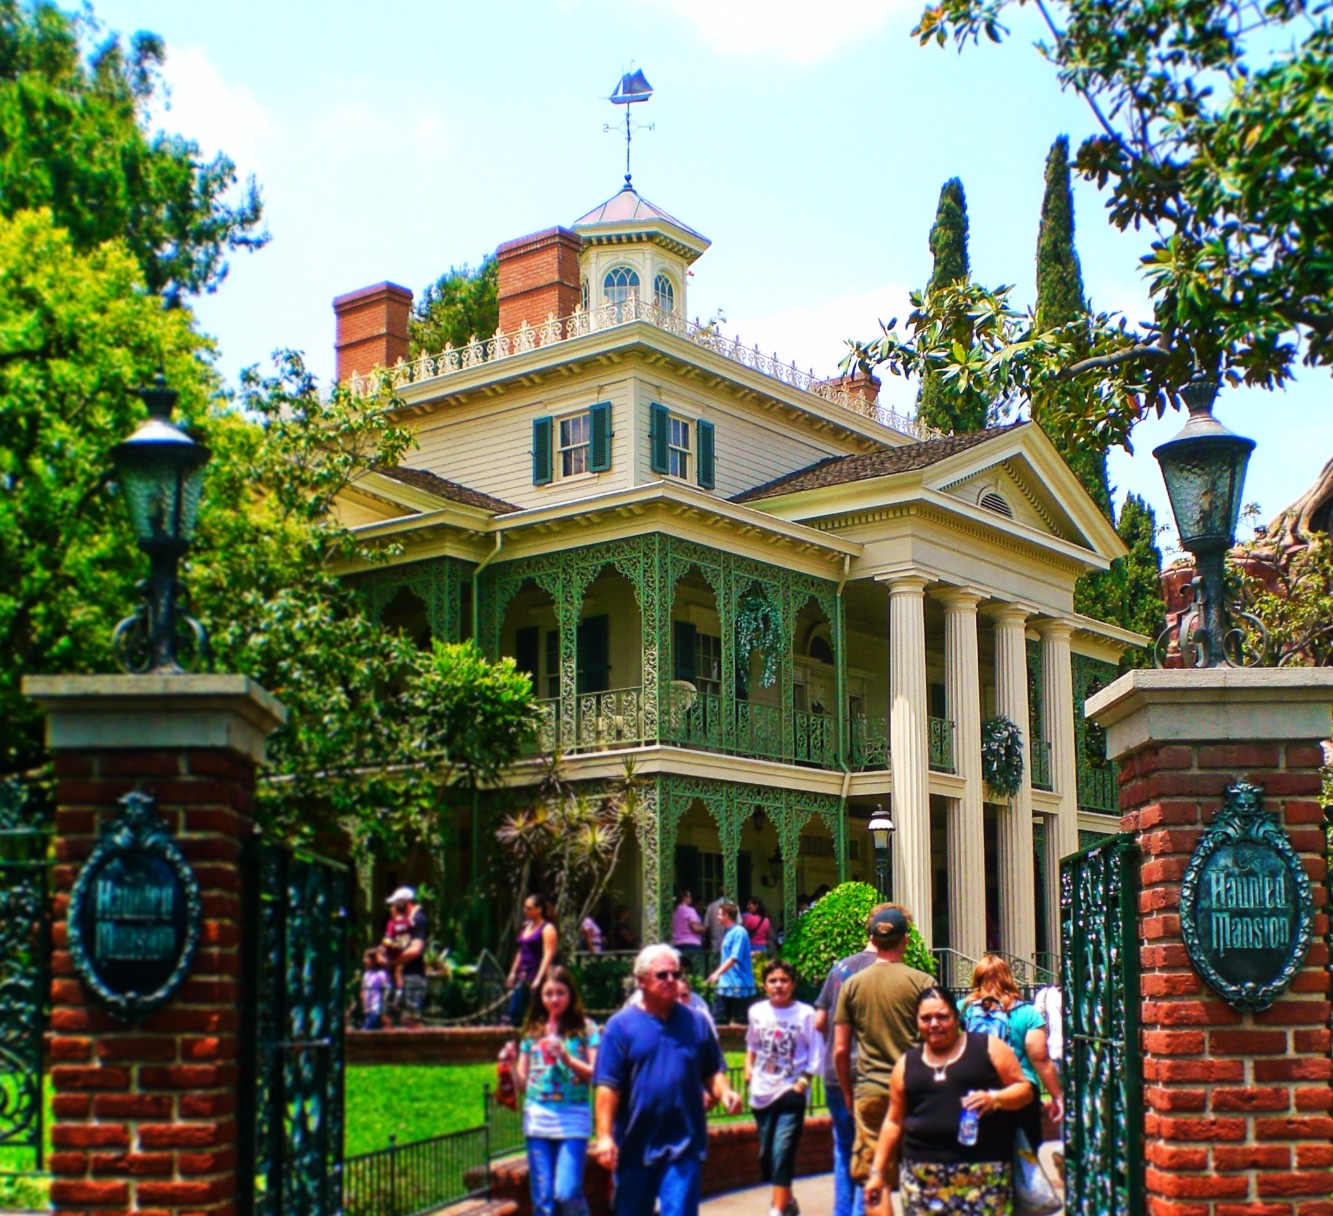 Haunted Mansion New Orleans Square Disneyland 1 on Mansions In Mountain View California